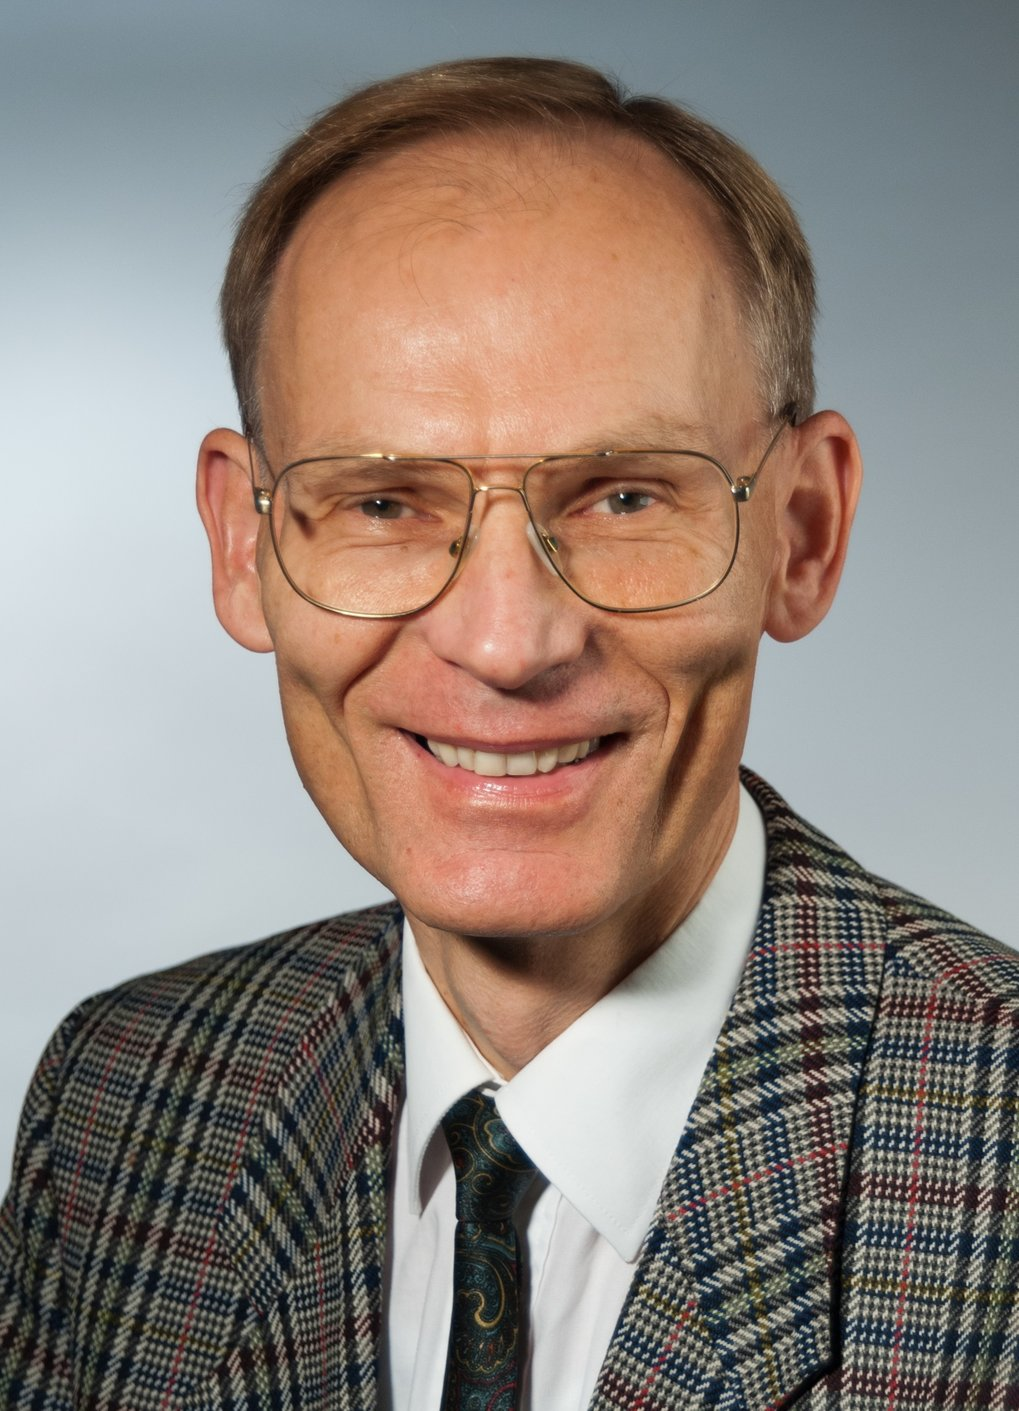 Prof. Dr. Siegfried Dietrich<br />Director at the Max Planck Institute for Intelligent Systems (MPI-IS) & Director of the Institute for Theoretical Physics IV, University of Stuttgart <br /><br />Theory of Inhomogeneous Condensed Matter